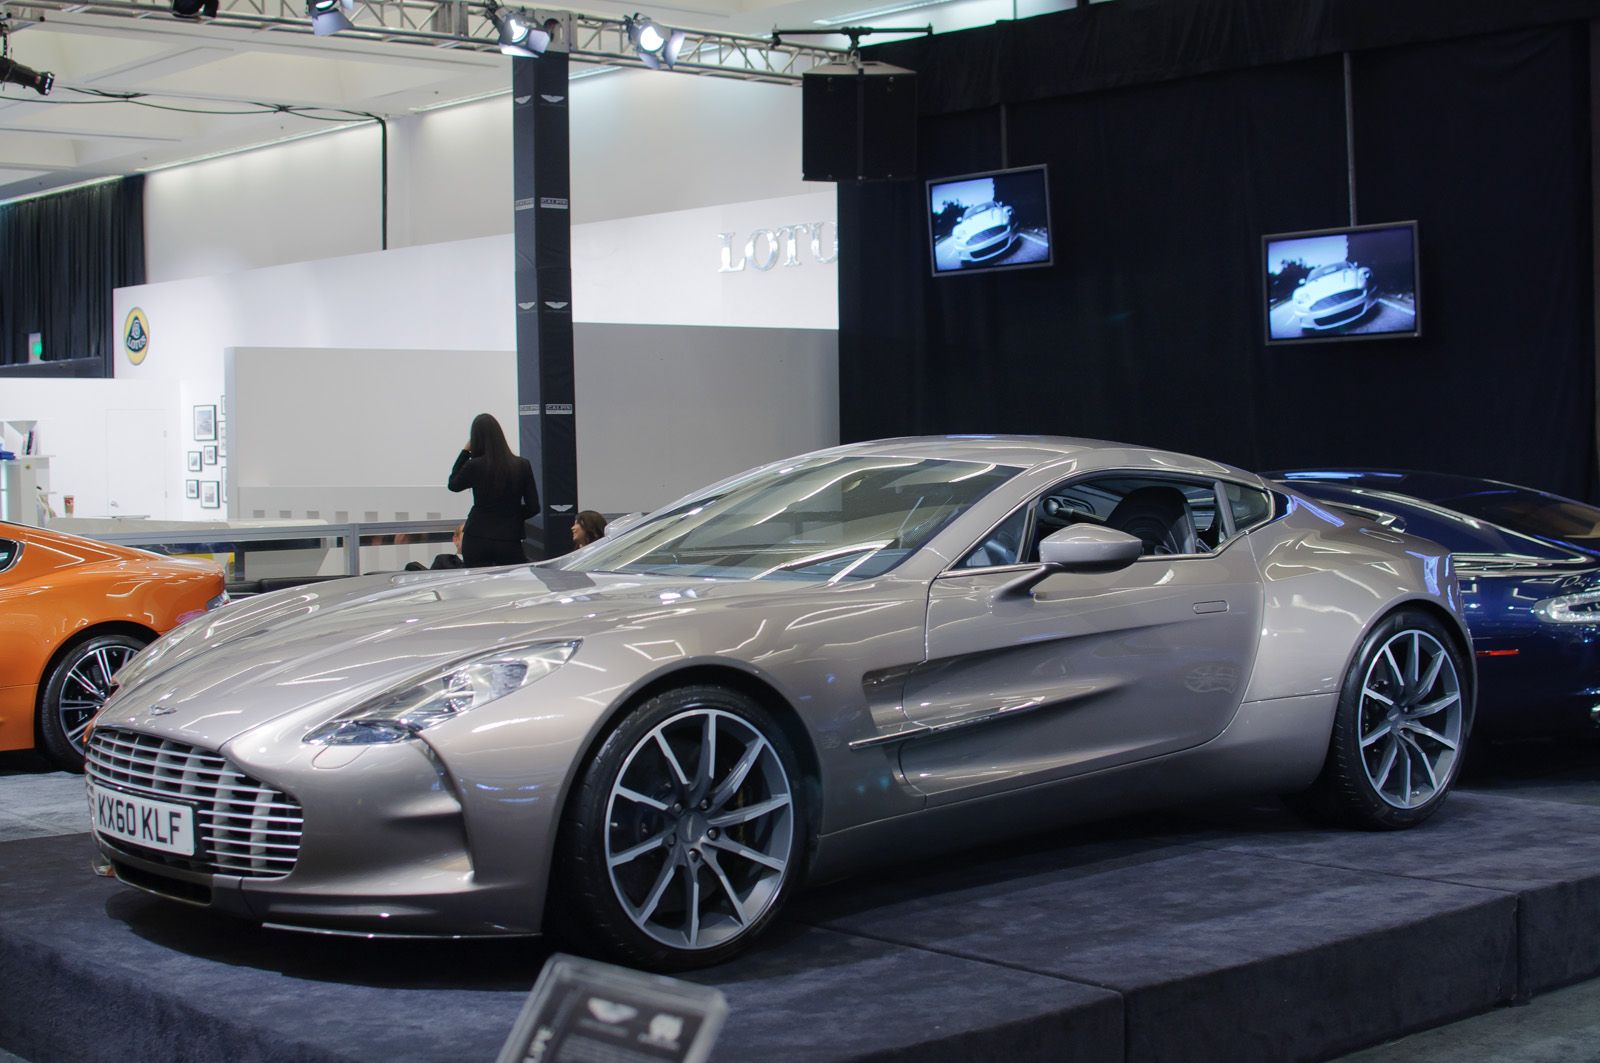 file aston martin one 77 flickr wikimedia commons. Black Bedroom Furniture Sets. Home Design Ideas